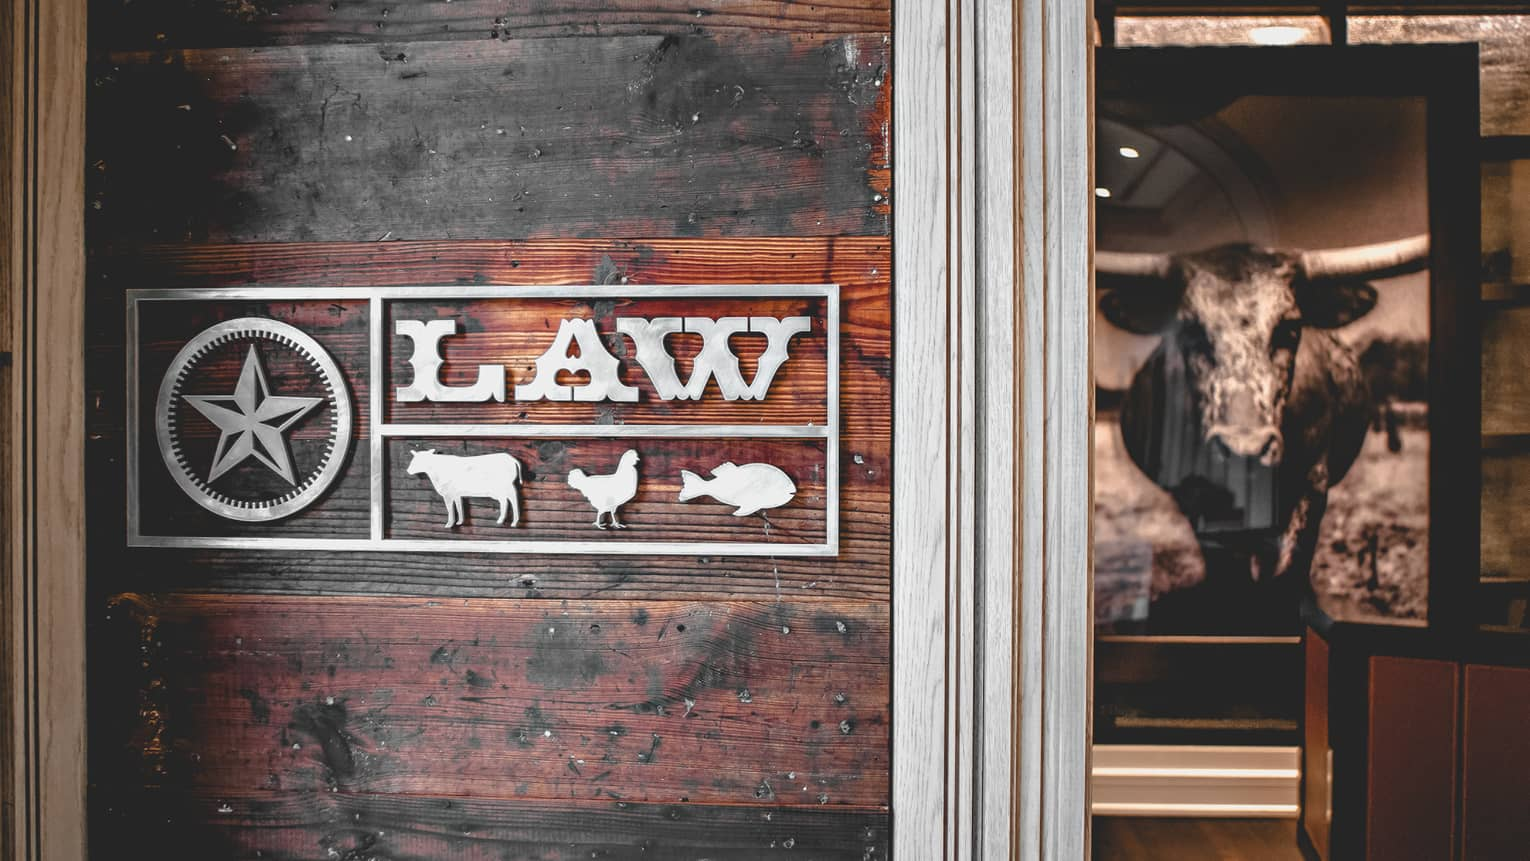 Law restaurant sign with metal Texas lonestar, cow, chicken and fish symbols against rustic wood wall